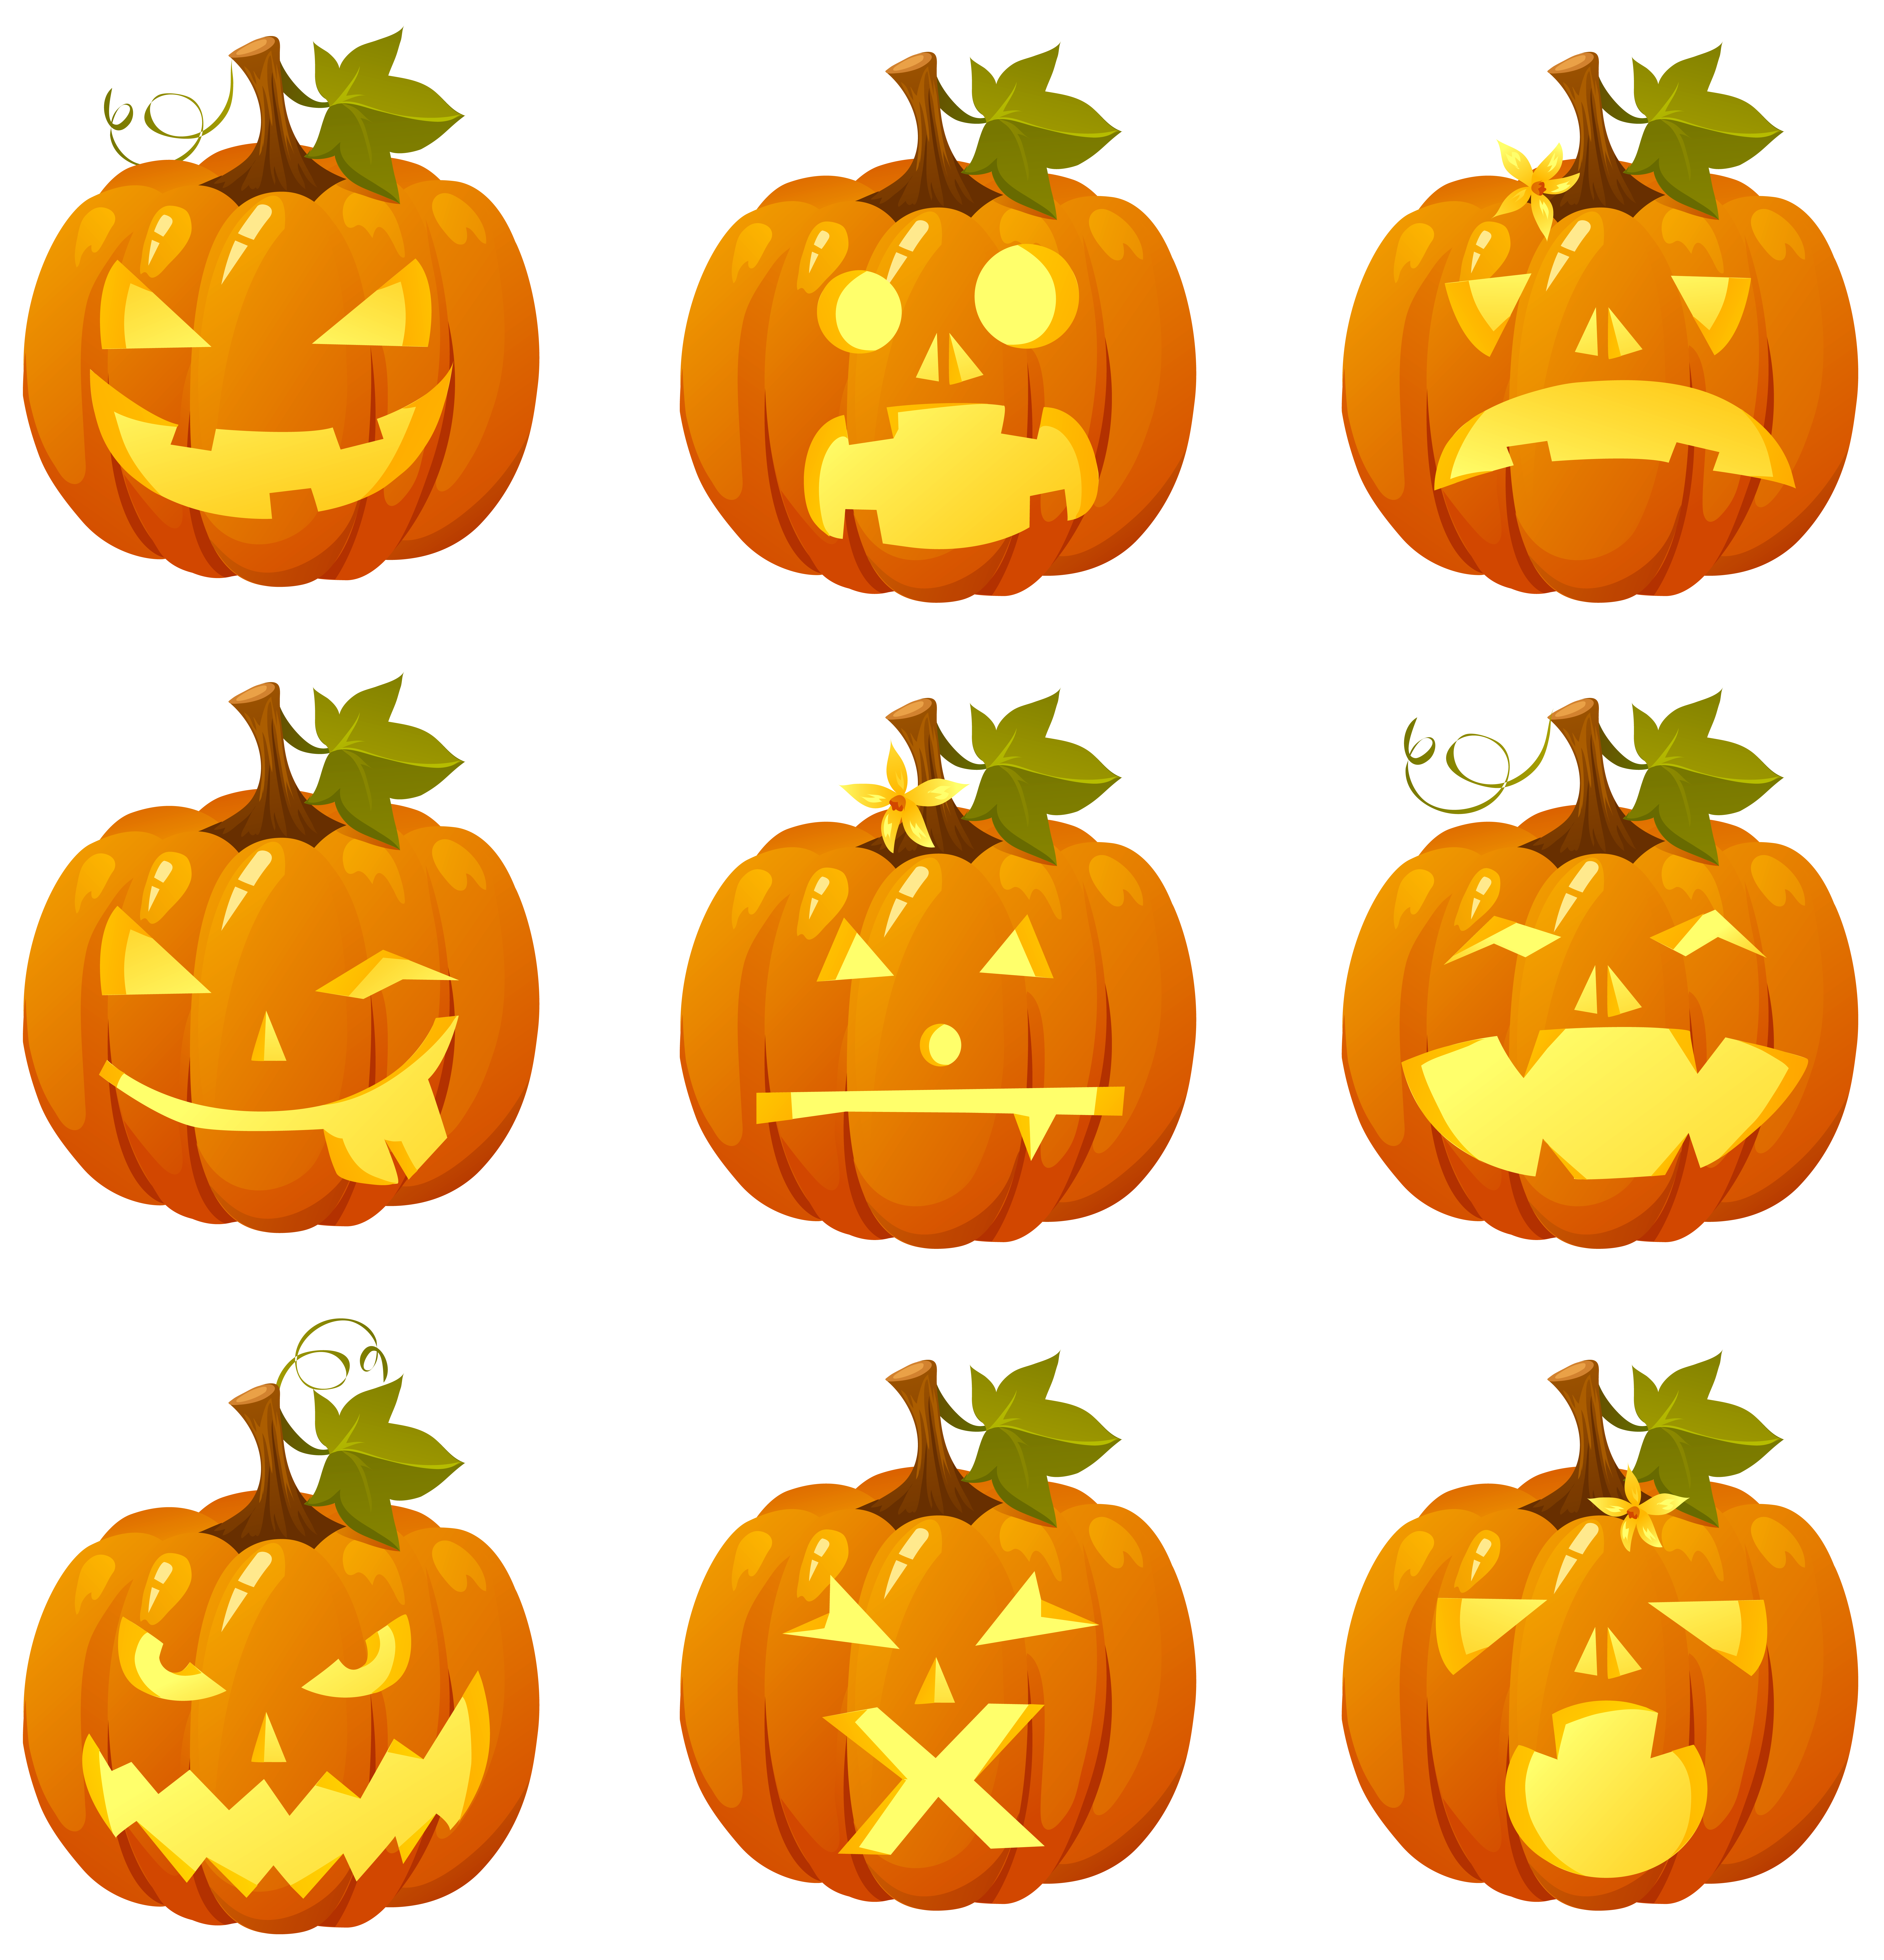 Halloween Pumpkin Clip Art - .